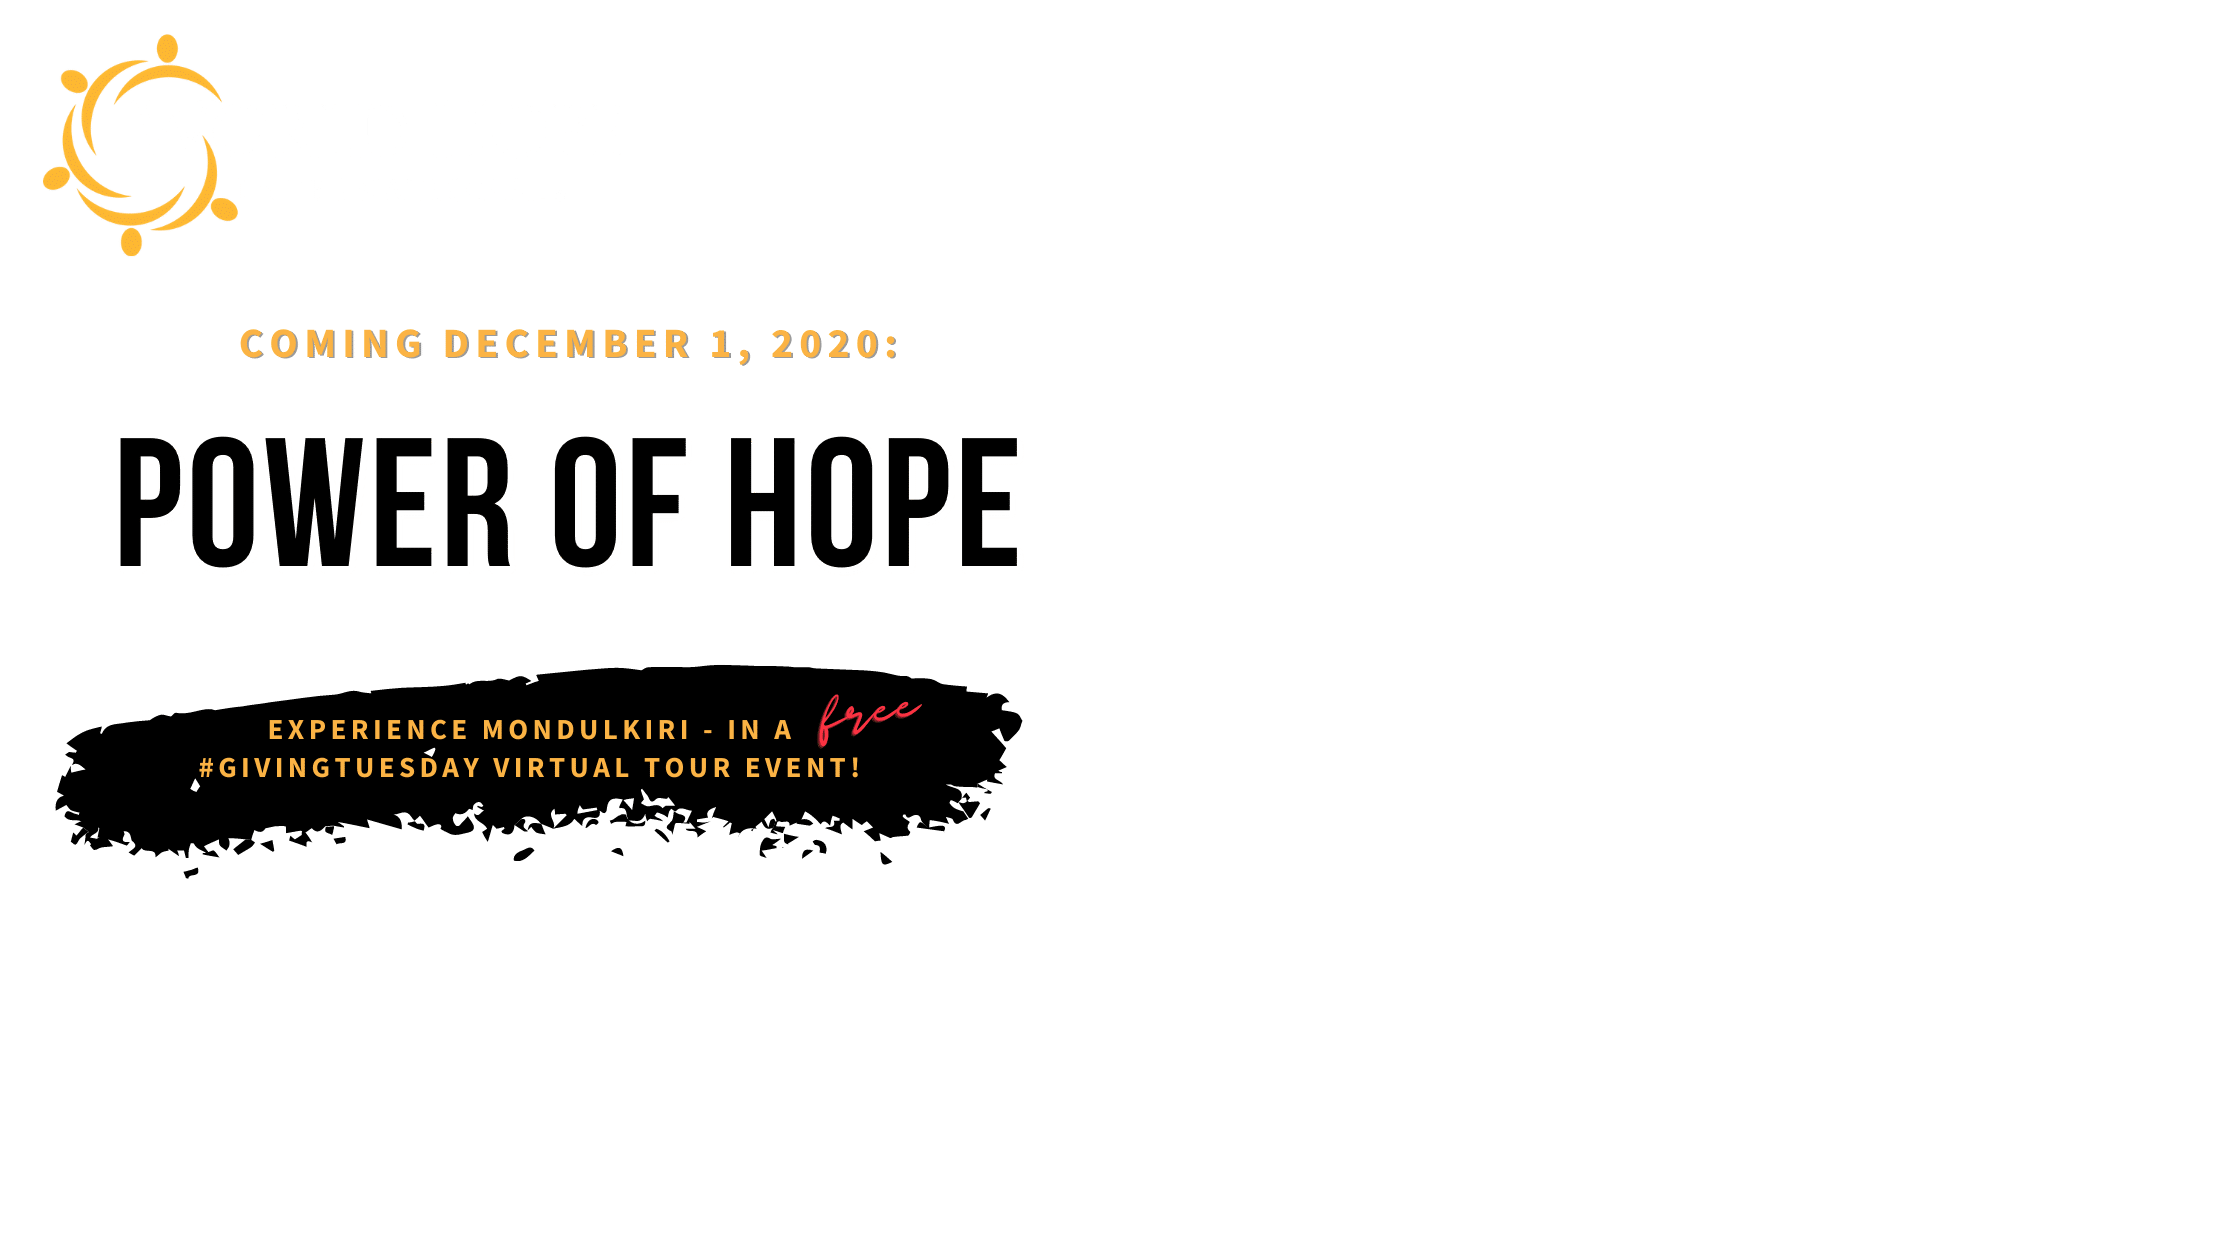 Coming December 1st, Power of Hope: Experience Mondulkiri - in a free Giving Tuesday virtual tour event